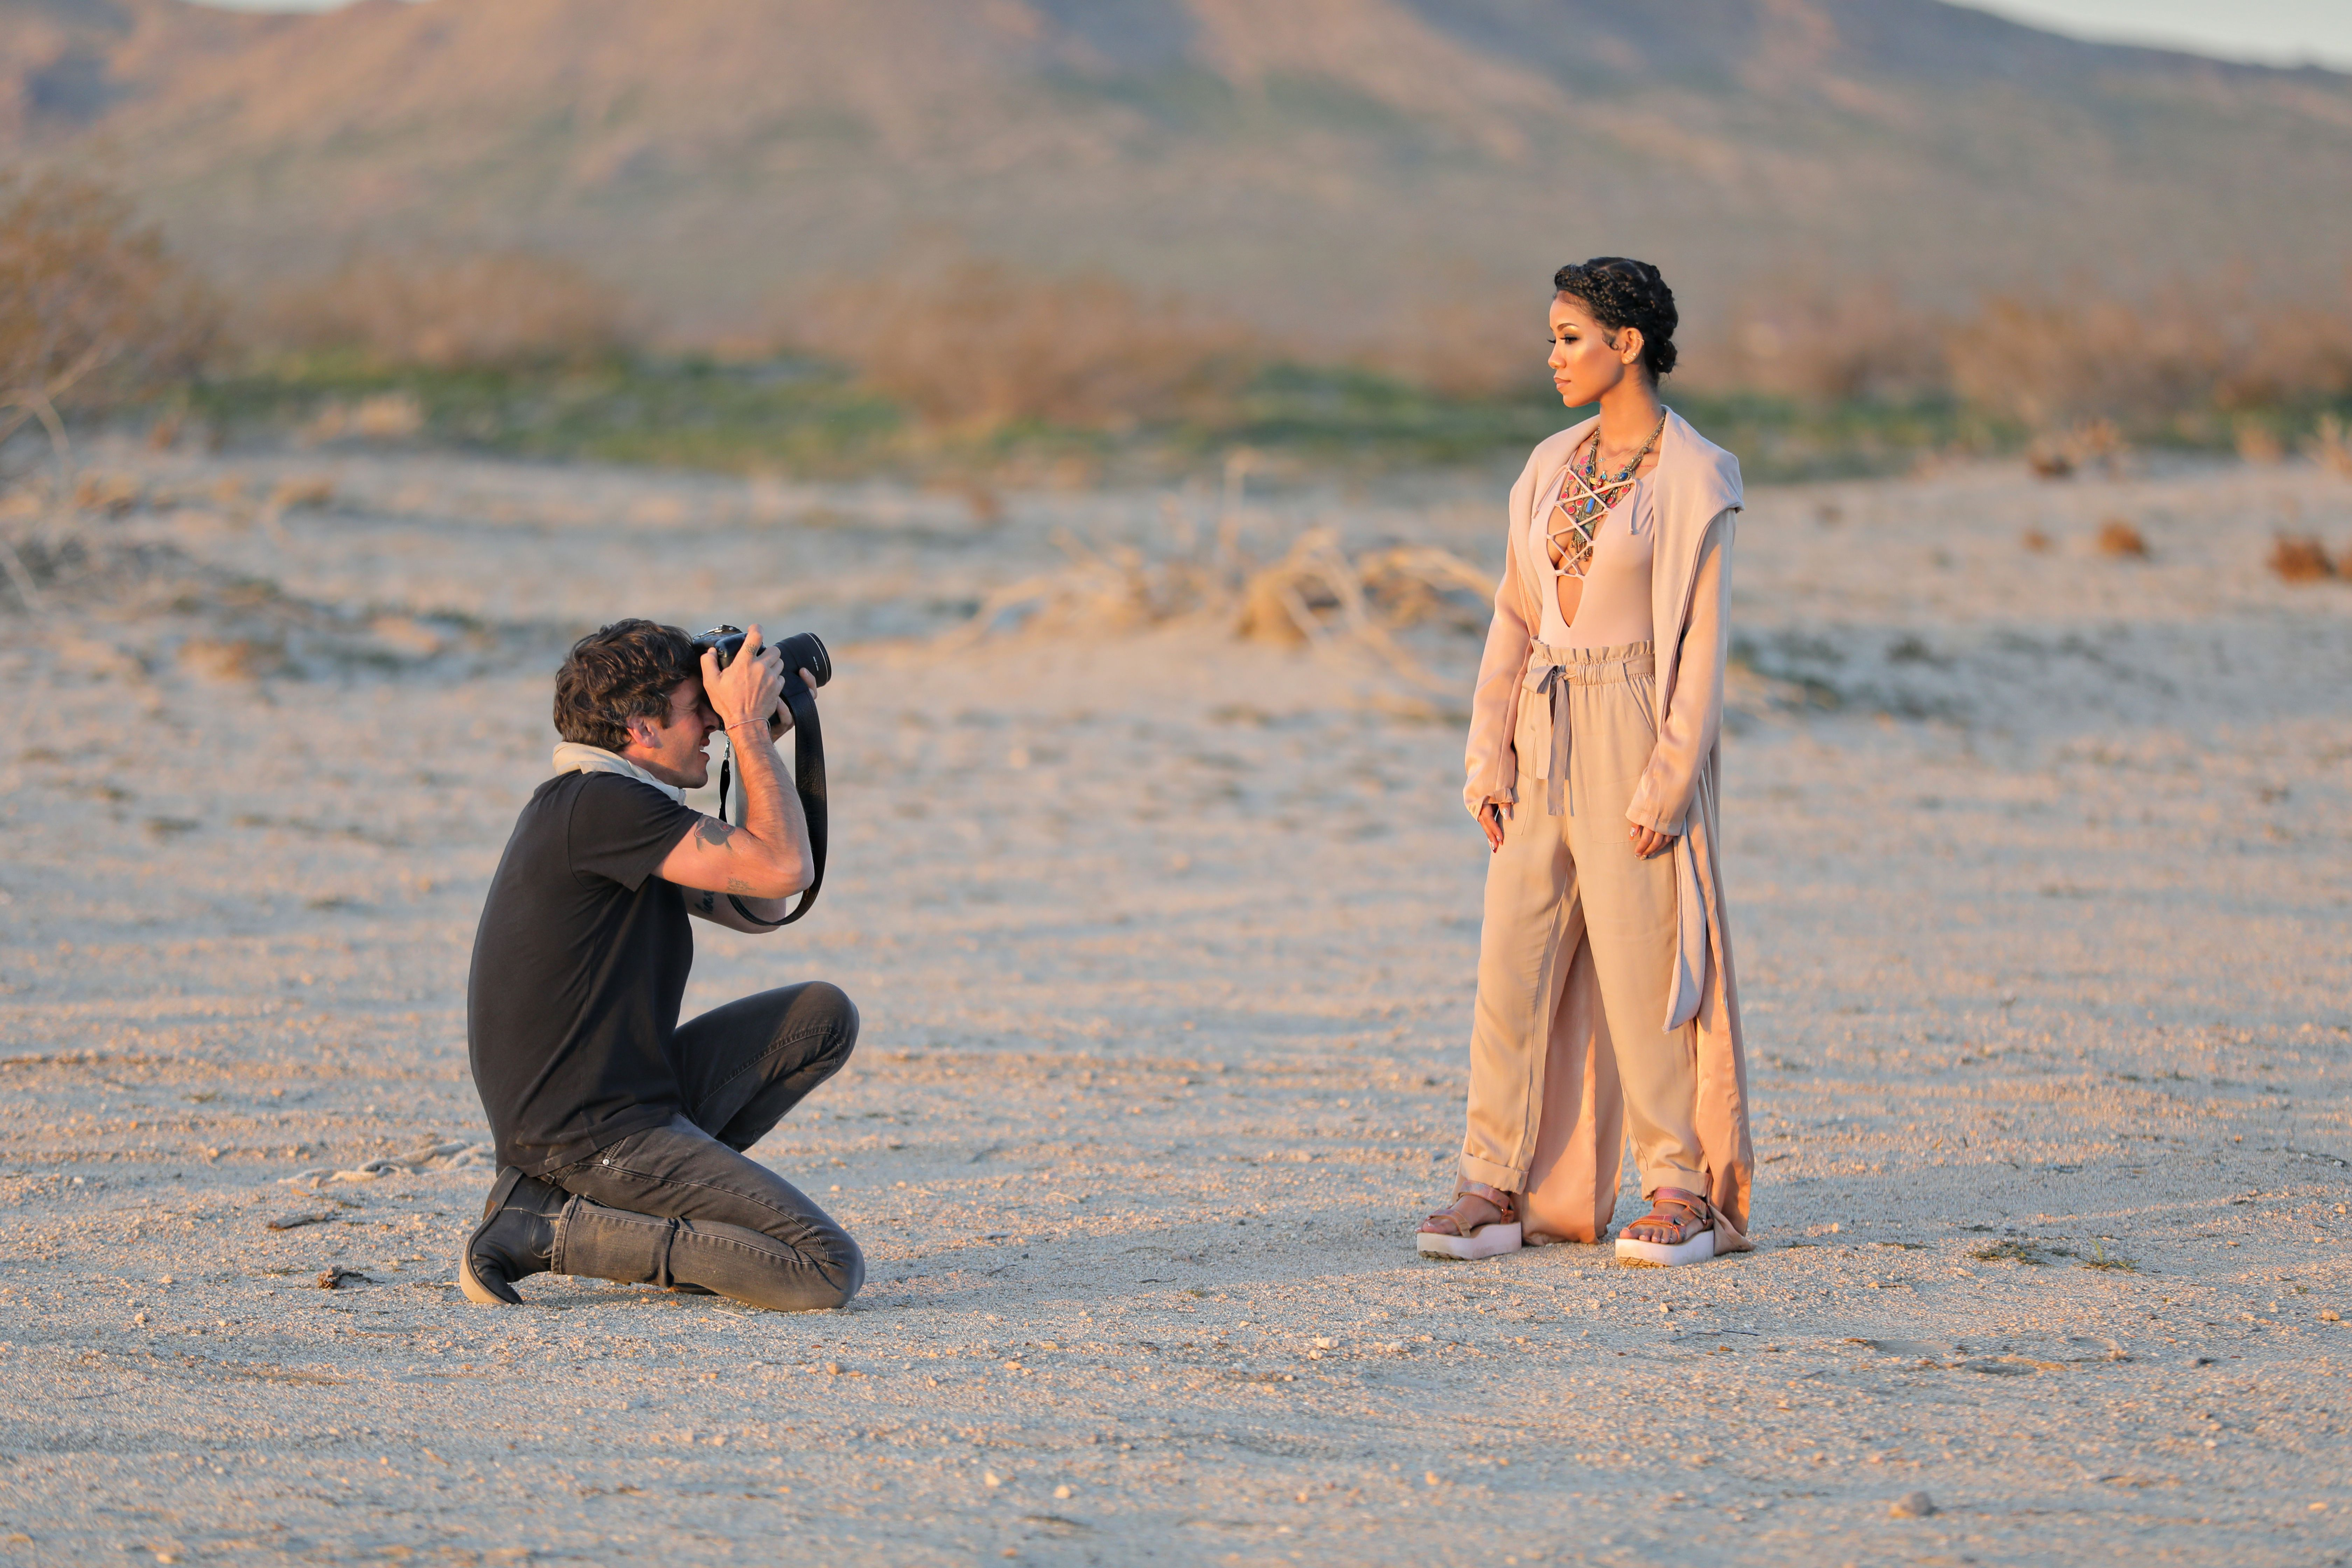 3e69c3bd6181 Here s a behind the scenes glimpse at our photoshoot with Jhené Aiko for  the new  TevaXJheneAiko collection. Jhené had dreamy